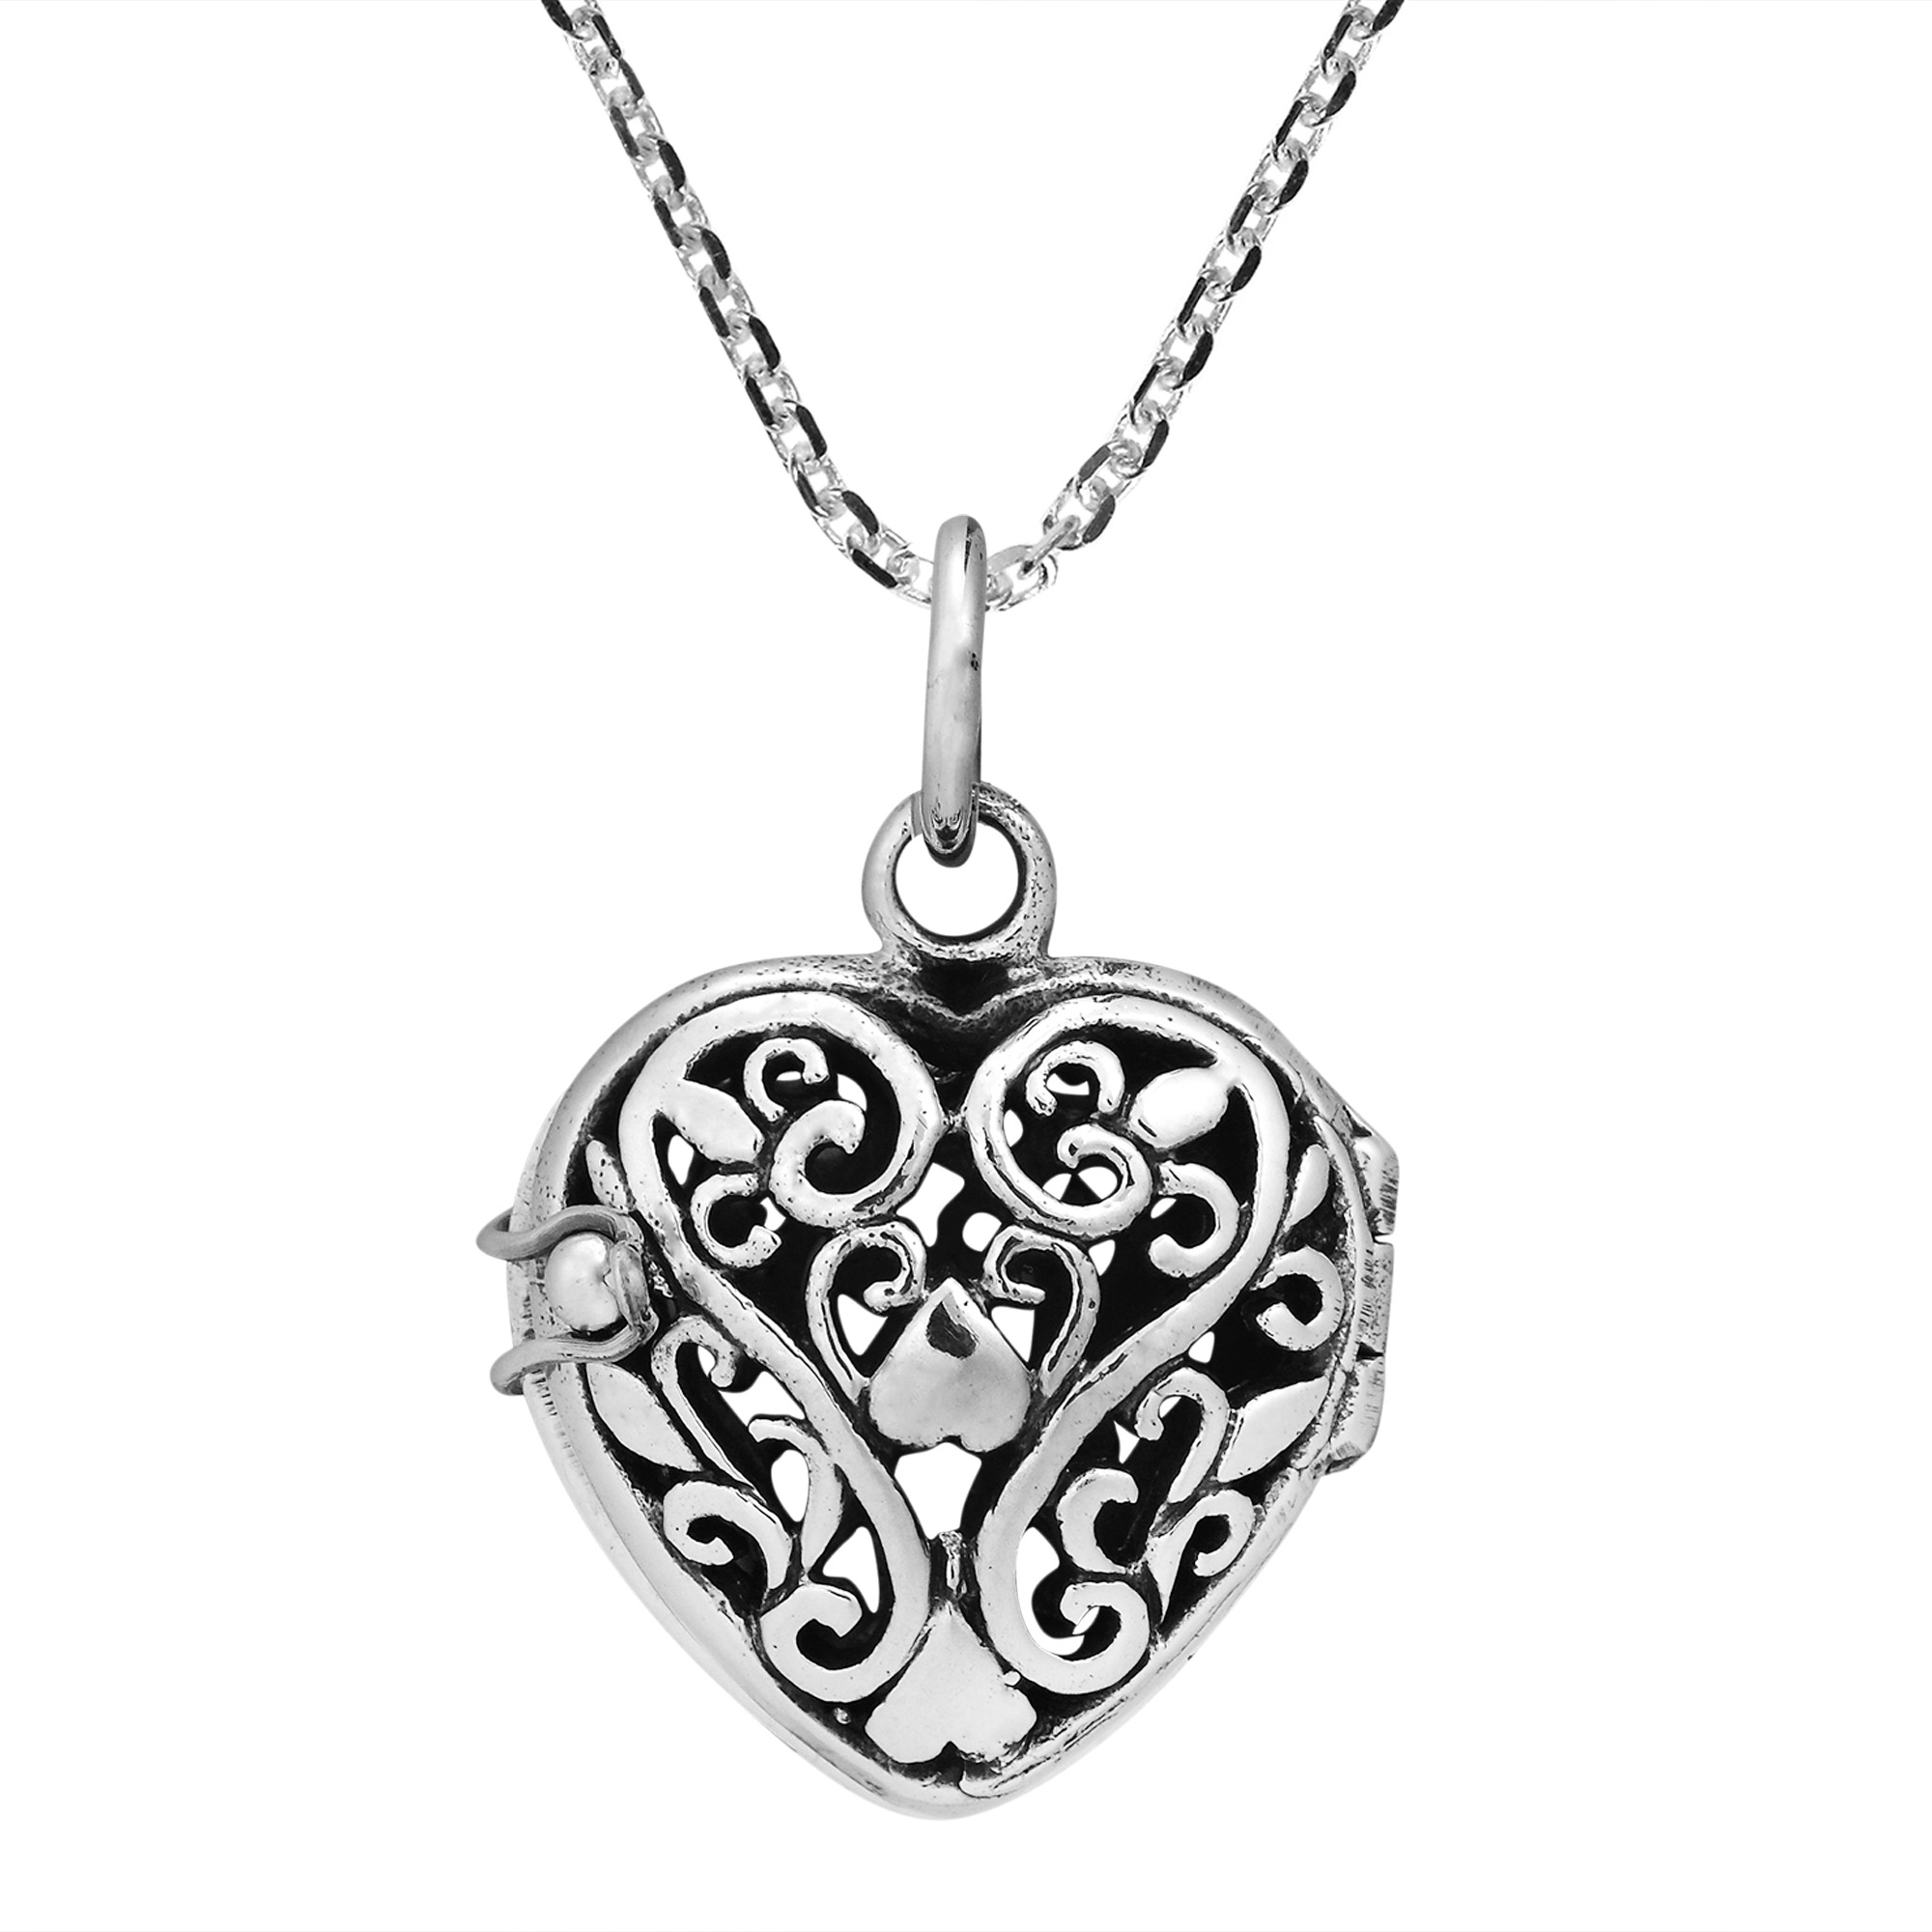 Romantic filigree heart locket sterling silver necklace aeravida filigree swirls embodies the heart design of this locket give your style a romantic twist with this necklace from thailand this necklace includes an mozeypictures Image collections